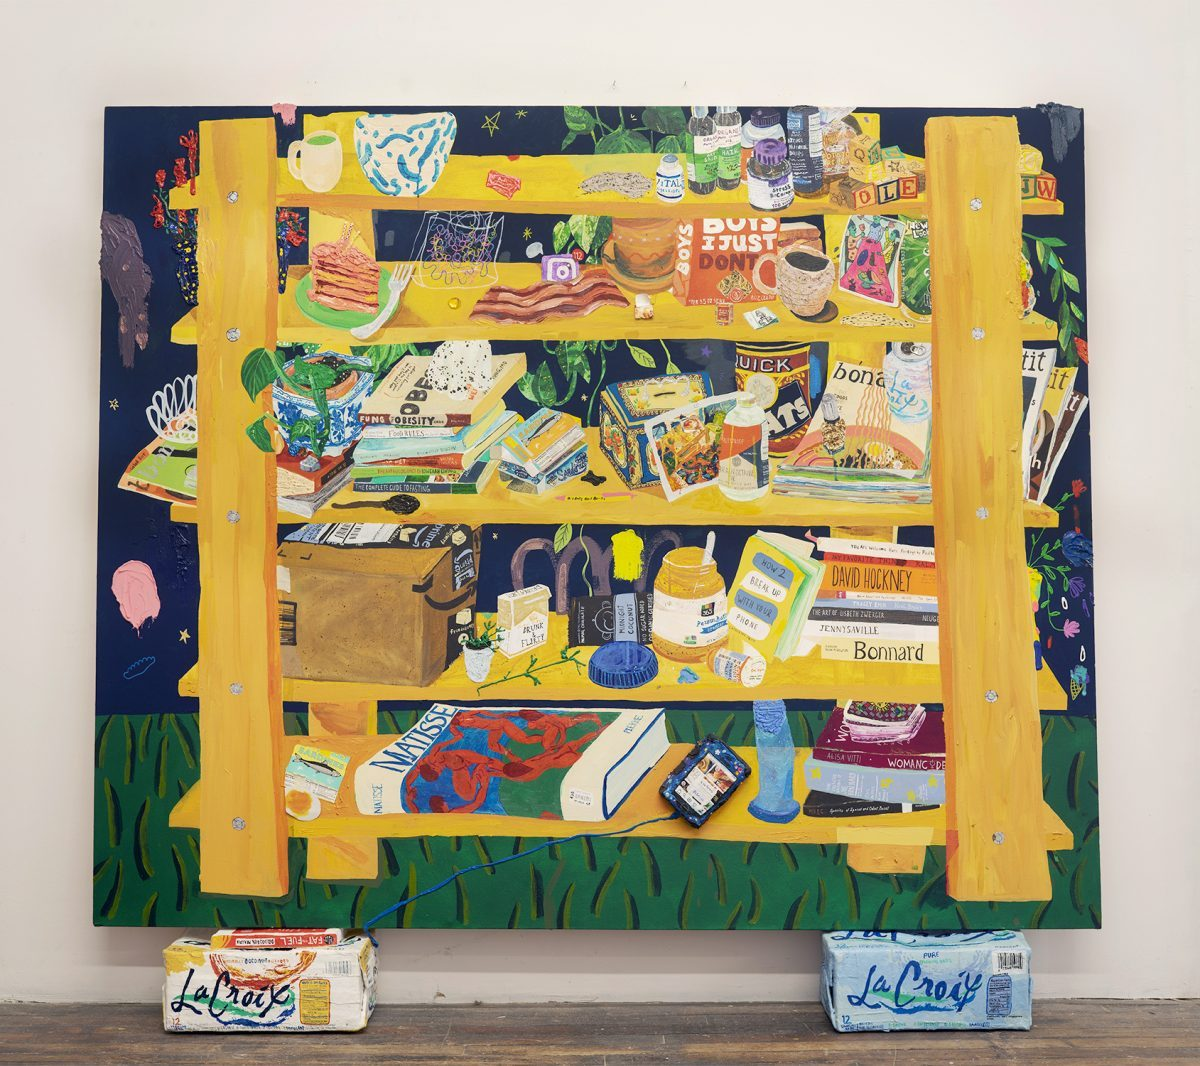 Photograph of painting of shelves of food and household items by artist Nicole Dyer, resident at GlogauAIR October 2019